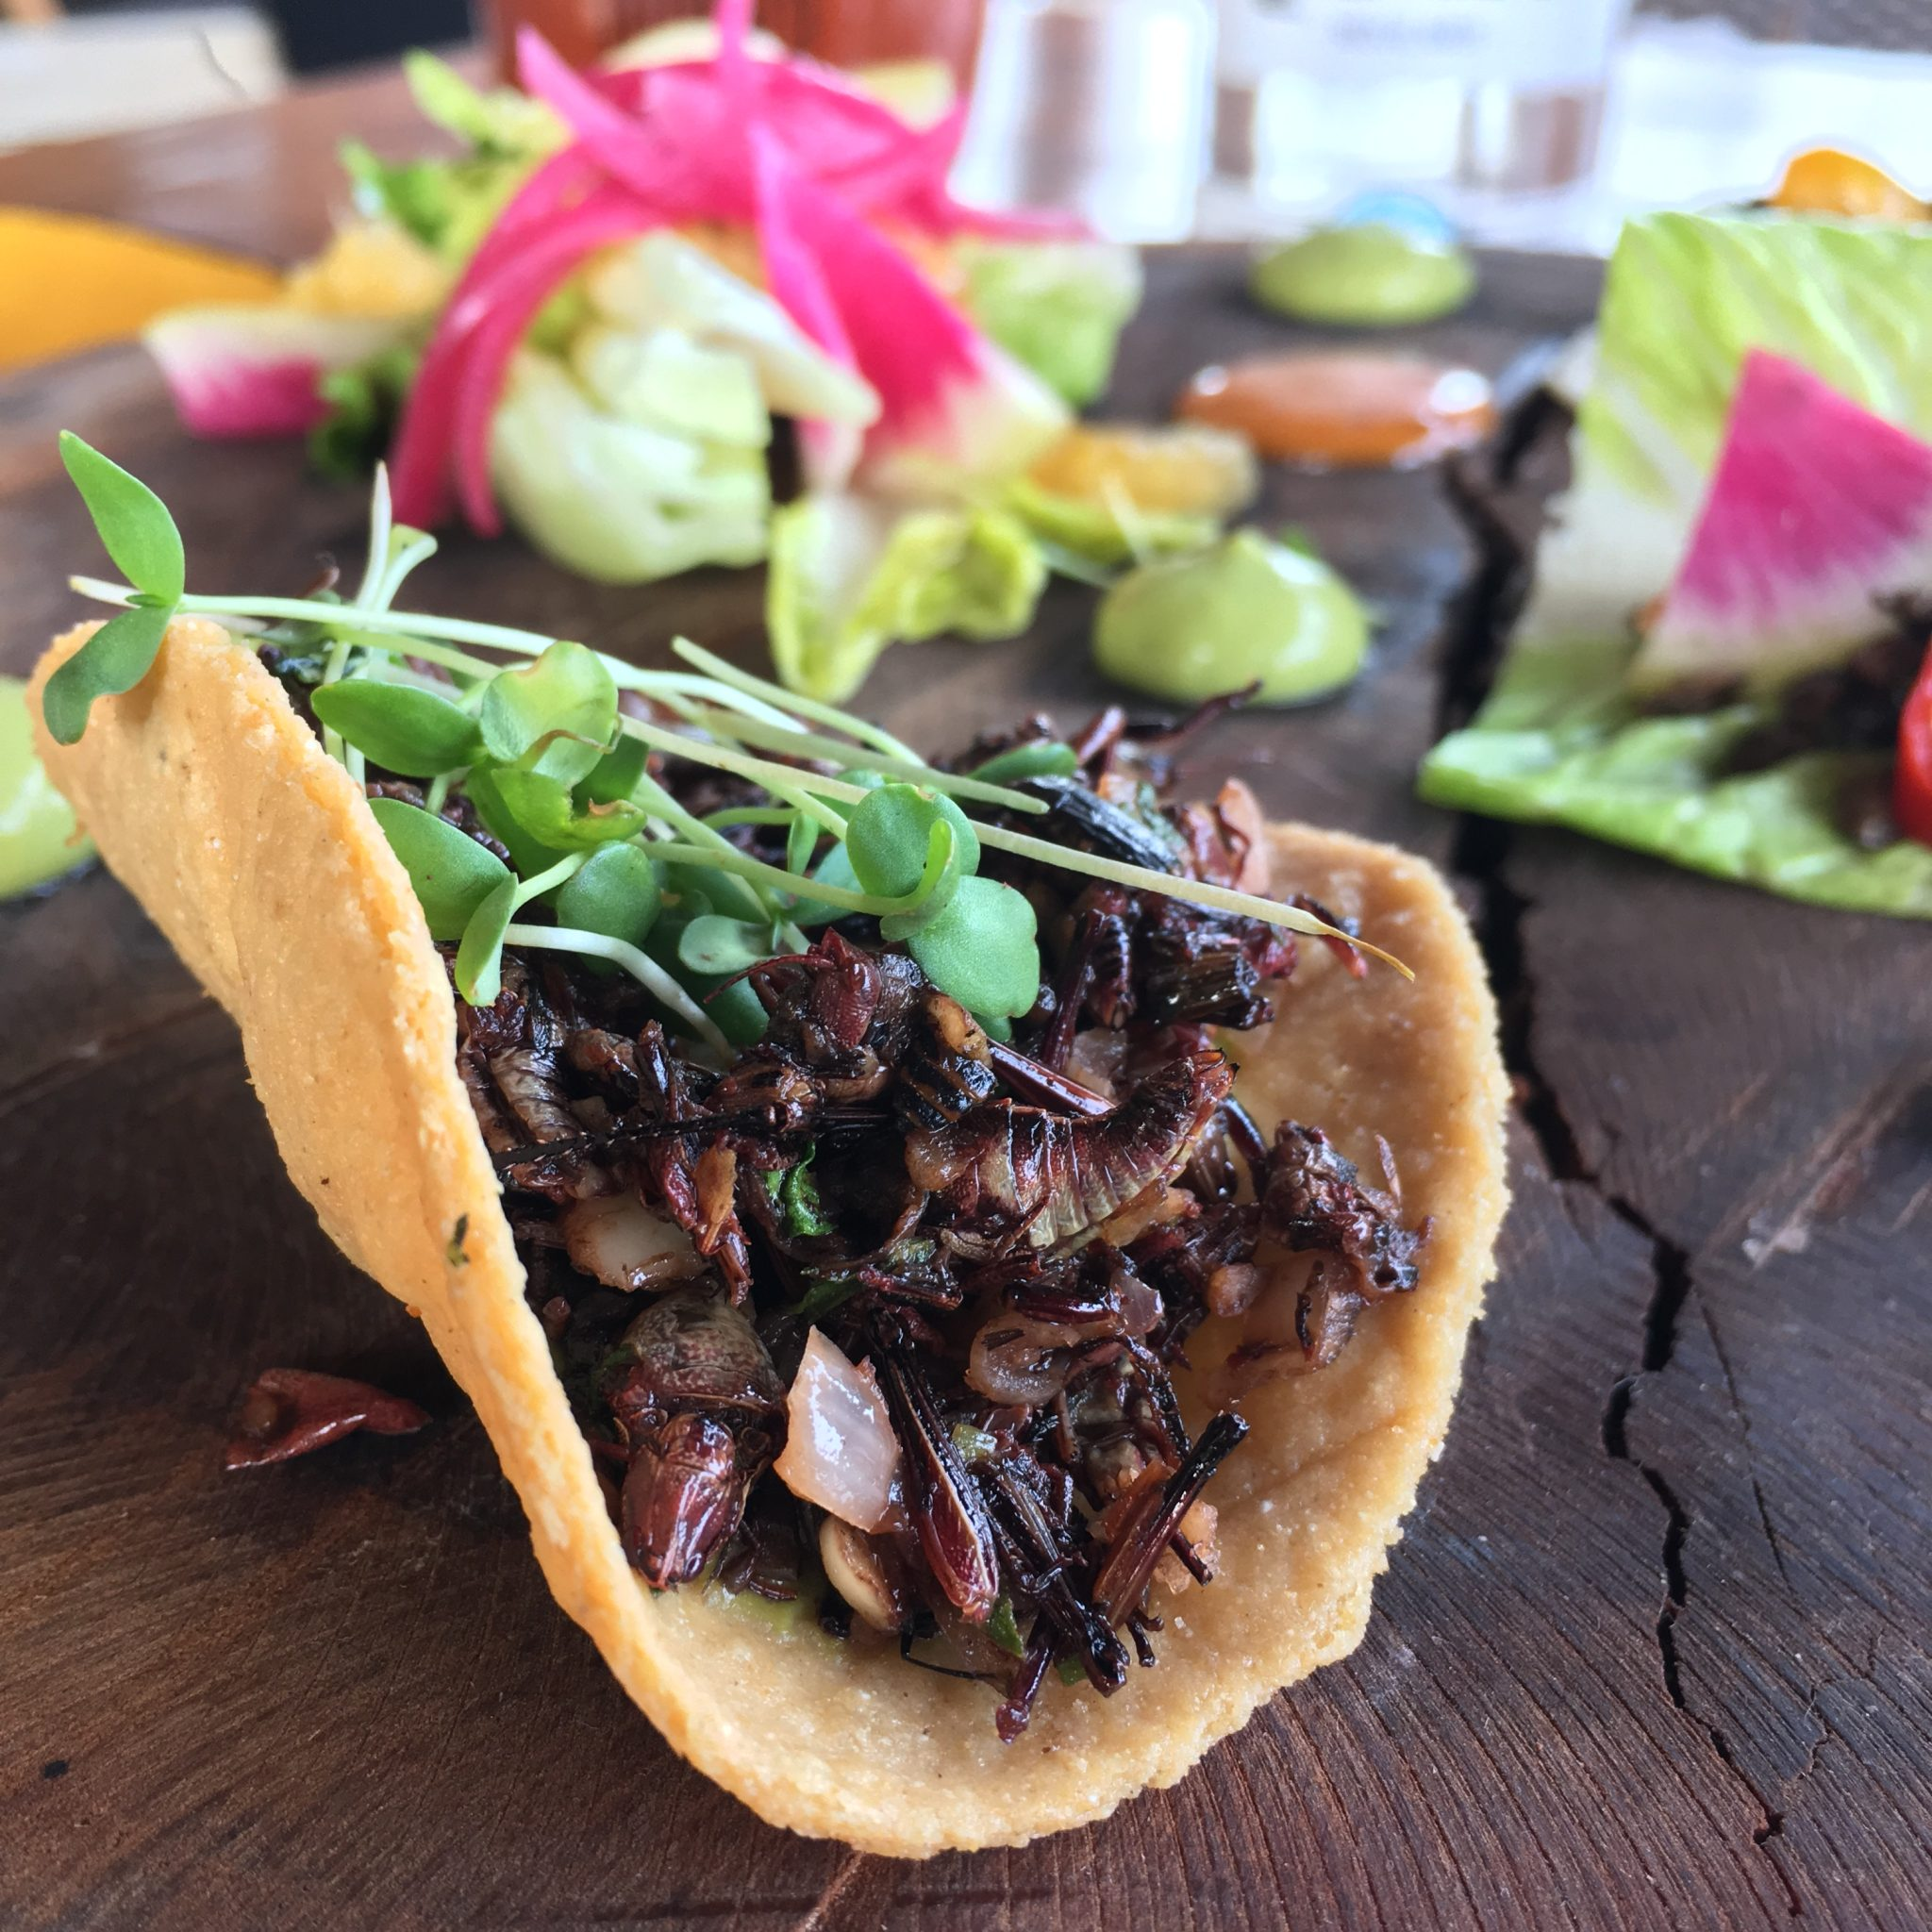 edible grasshoppers in Mexico